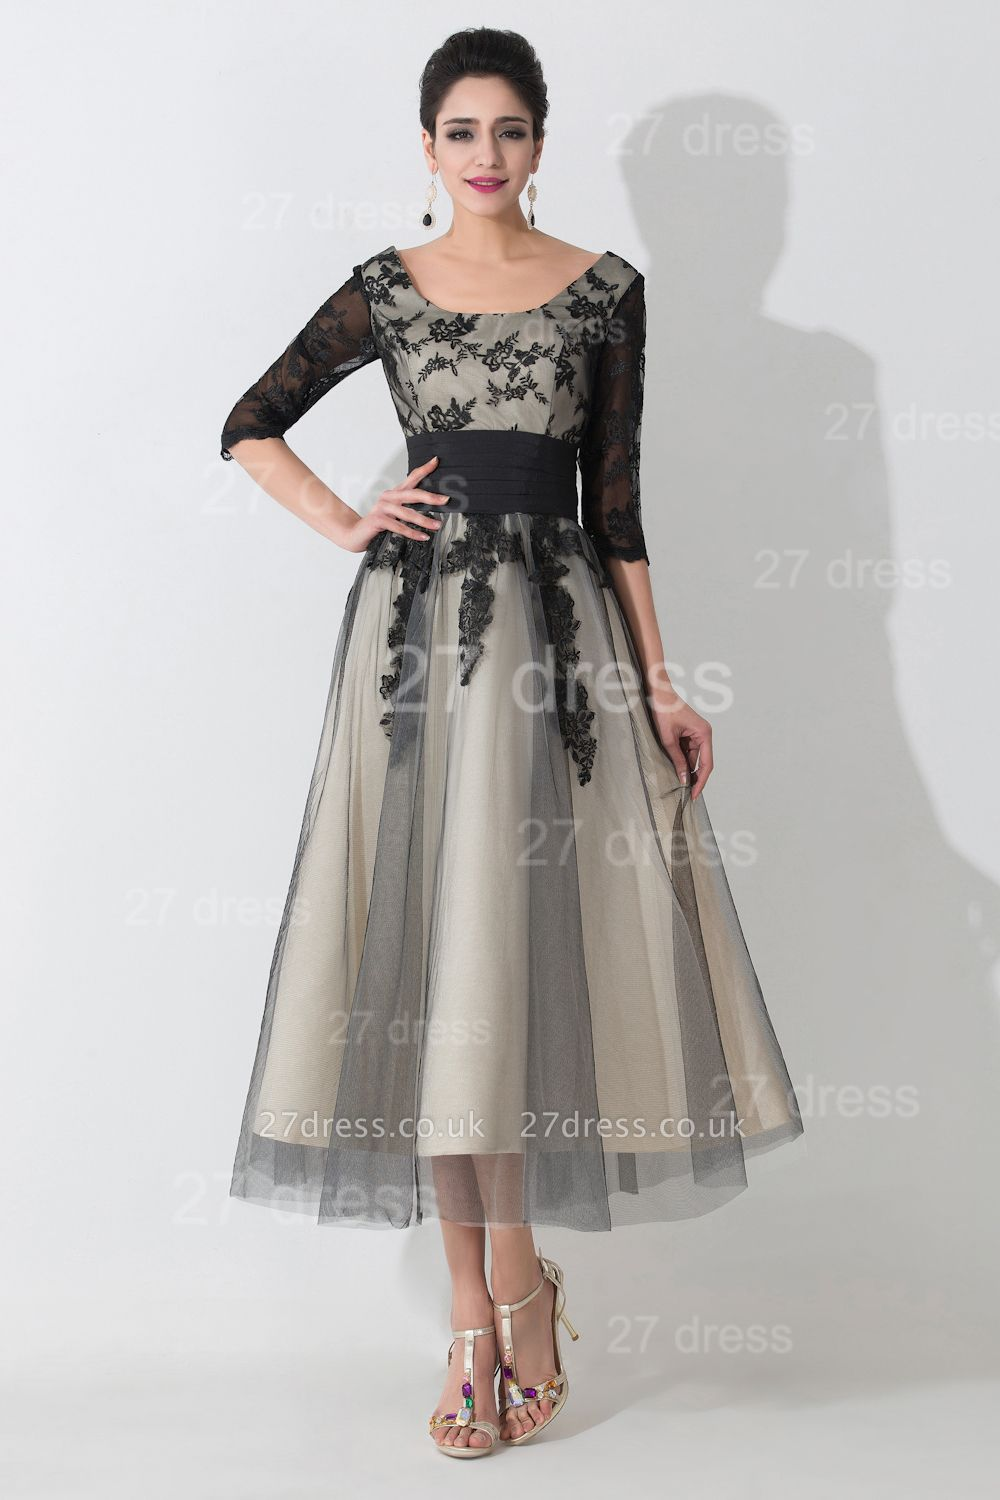 Newest Lace Appliques Tulle Evening Dress UK Half Sleeve